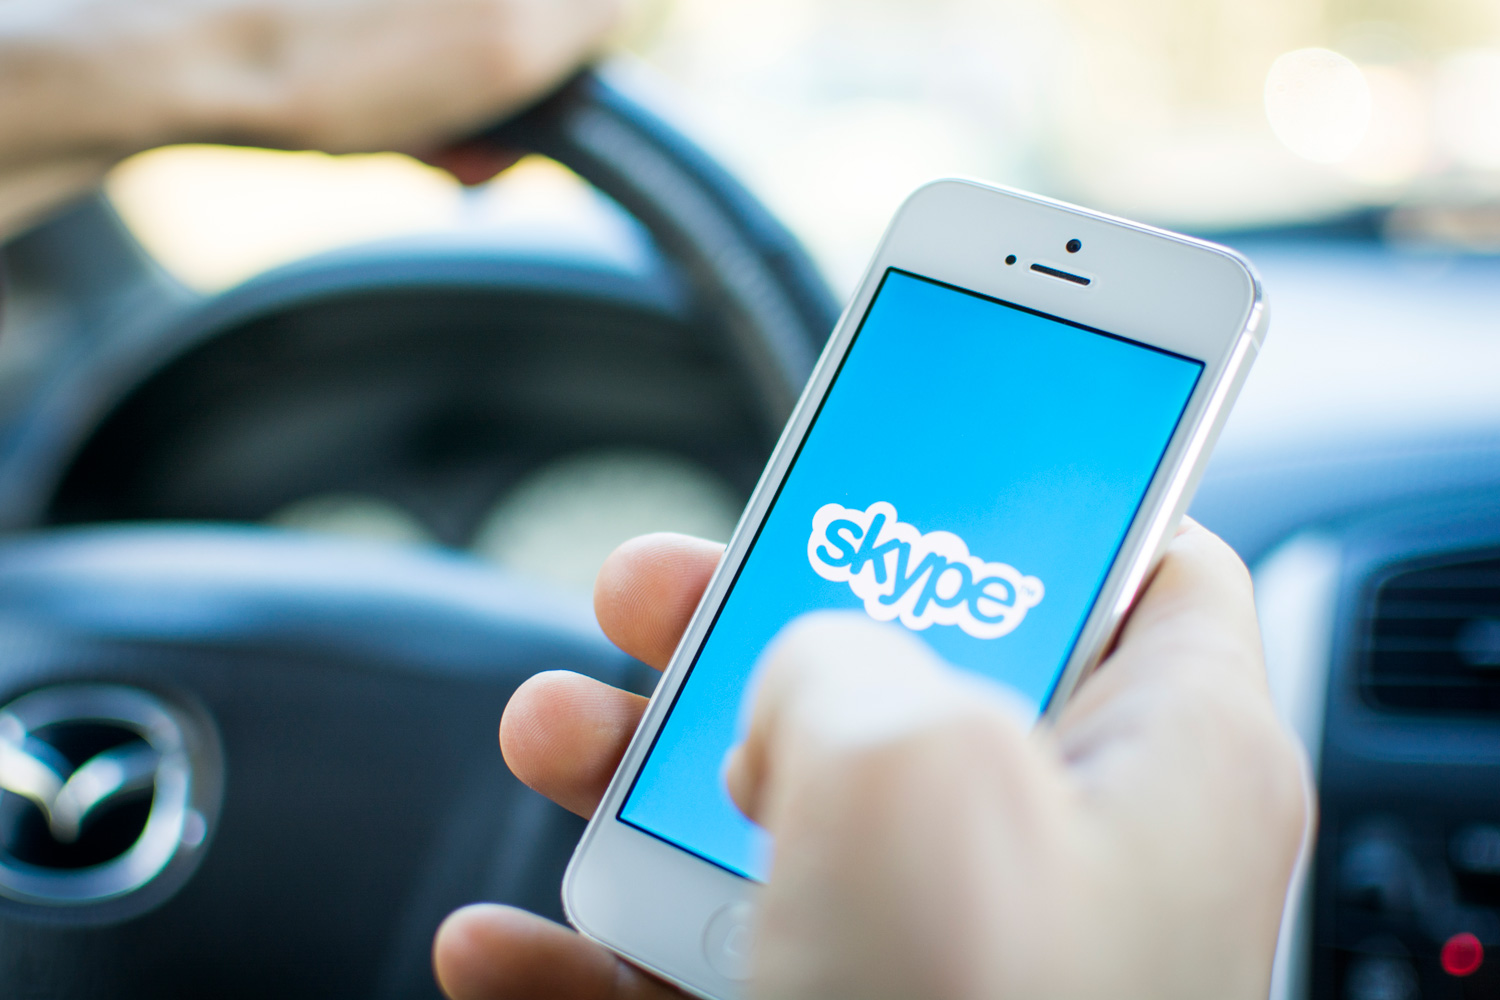 skype goes mobile Thursday skype announced its support for google's android platform, however most carriers have yet to allow skype on their phones in fear of losing revenue.